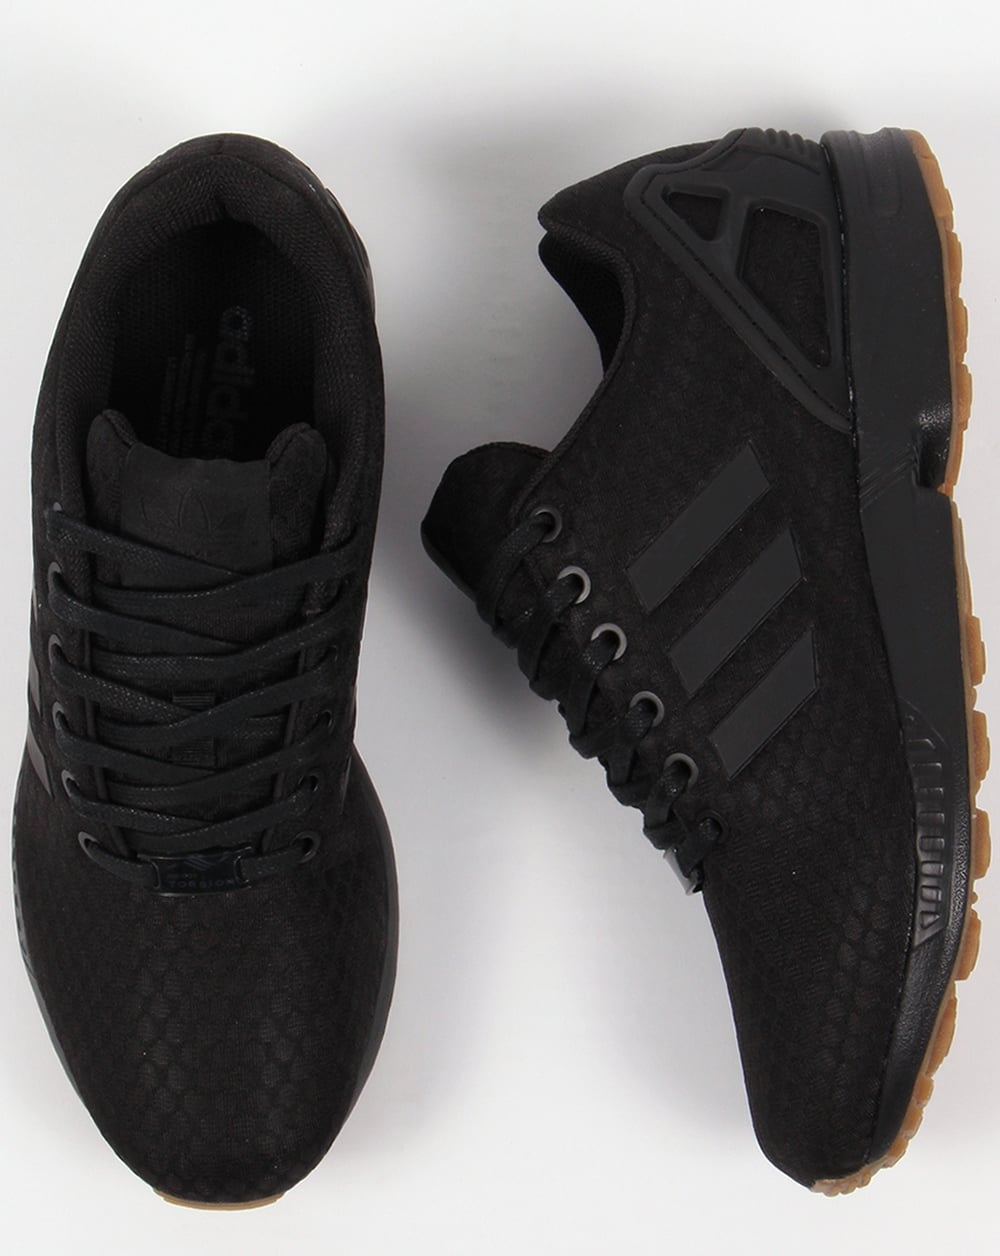 Adidas Zx Flux Originals Black